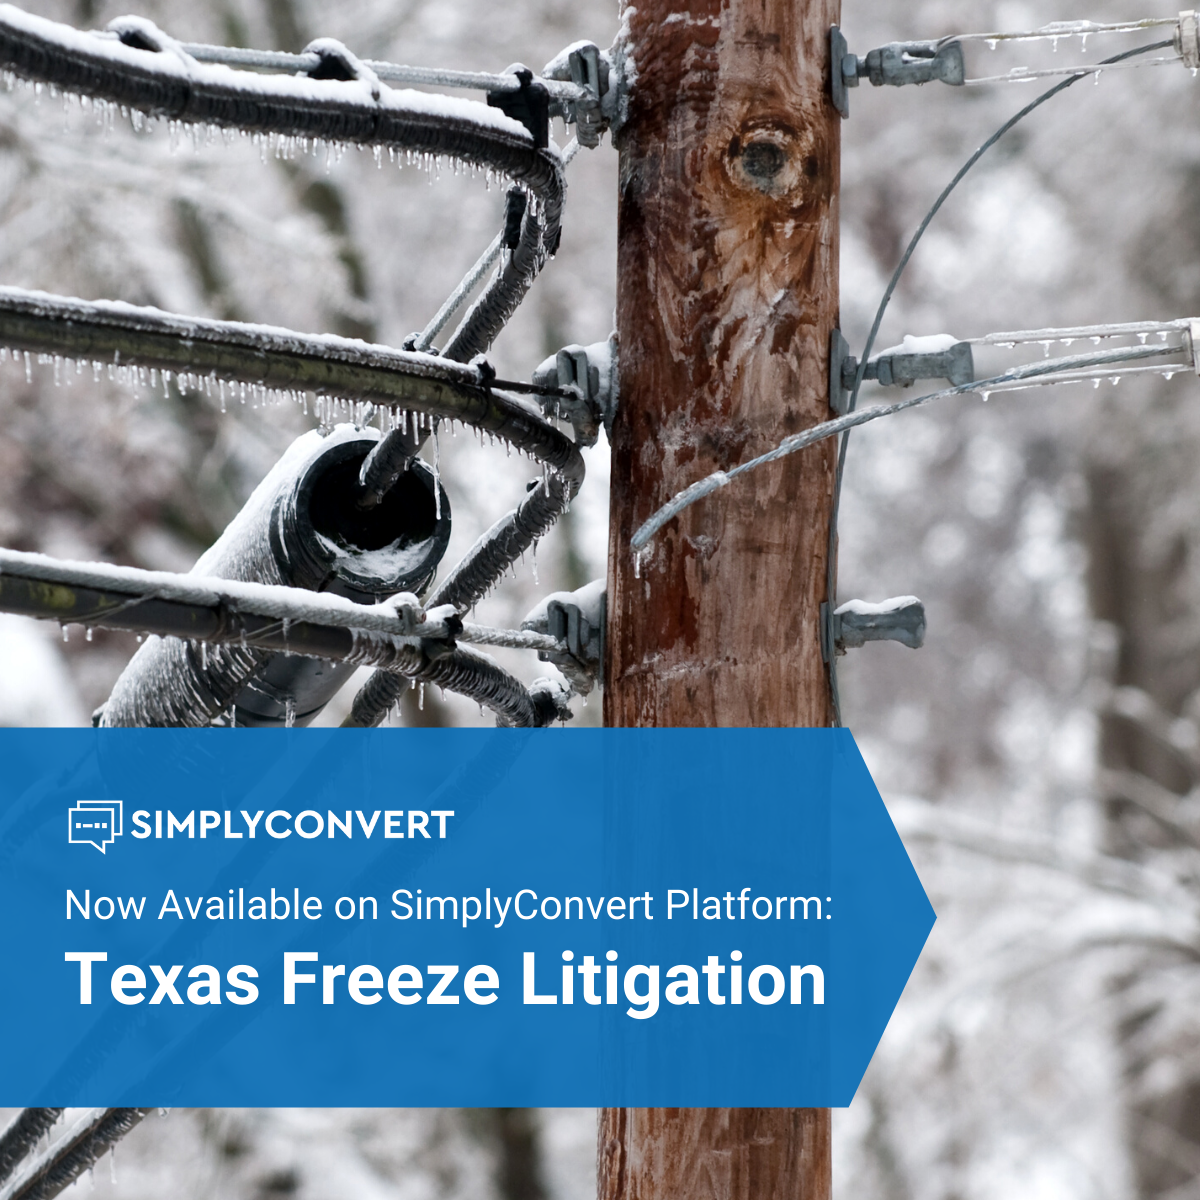 Texas Freeze Litigation